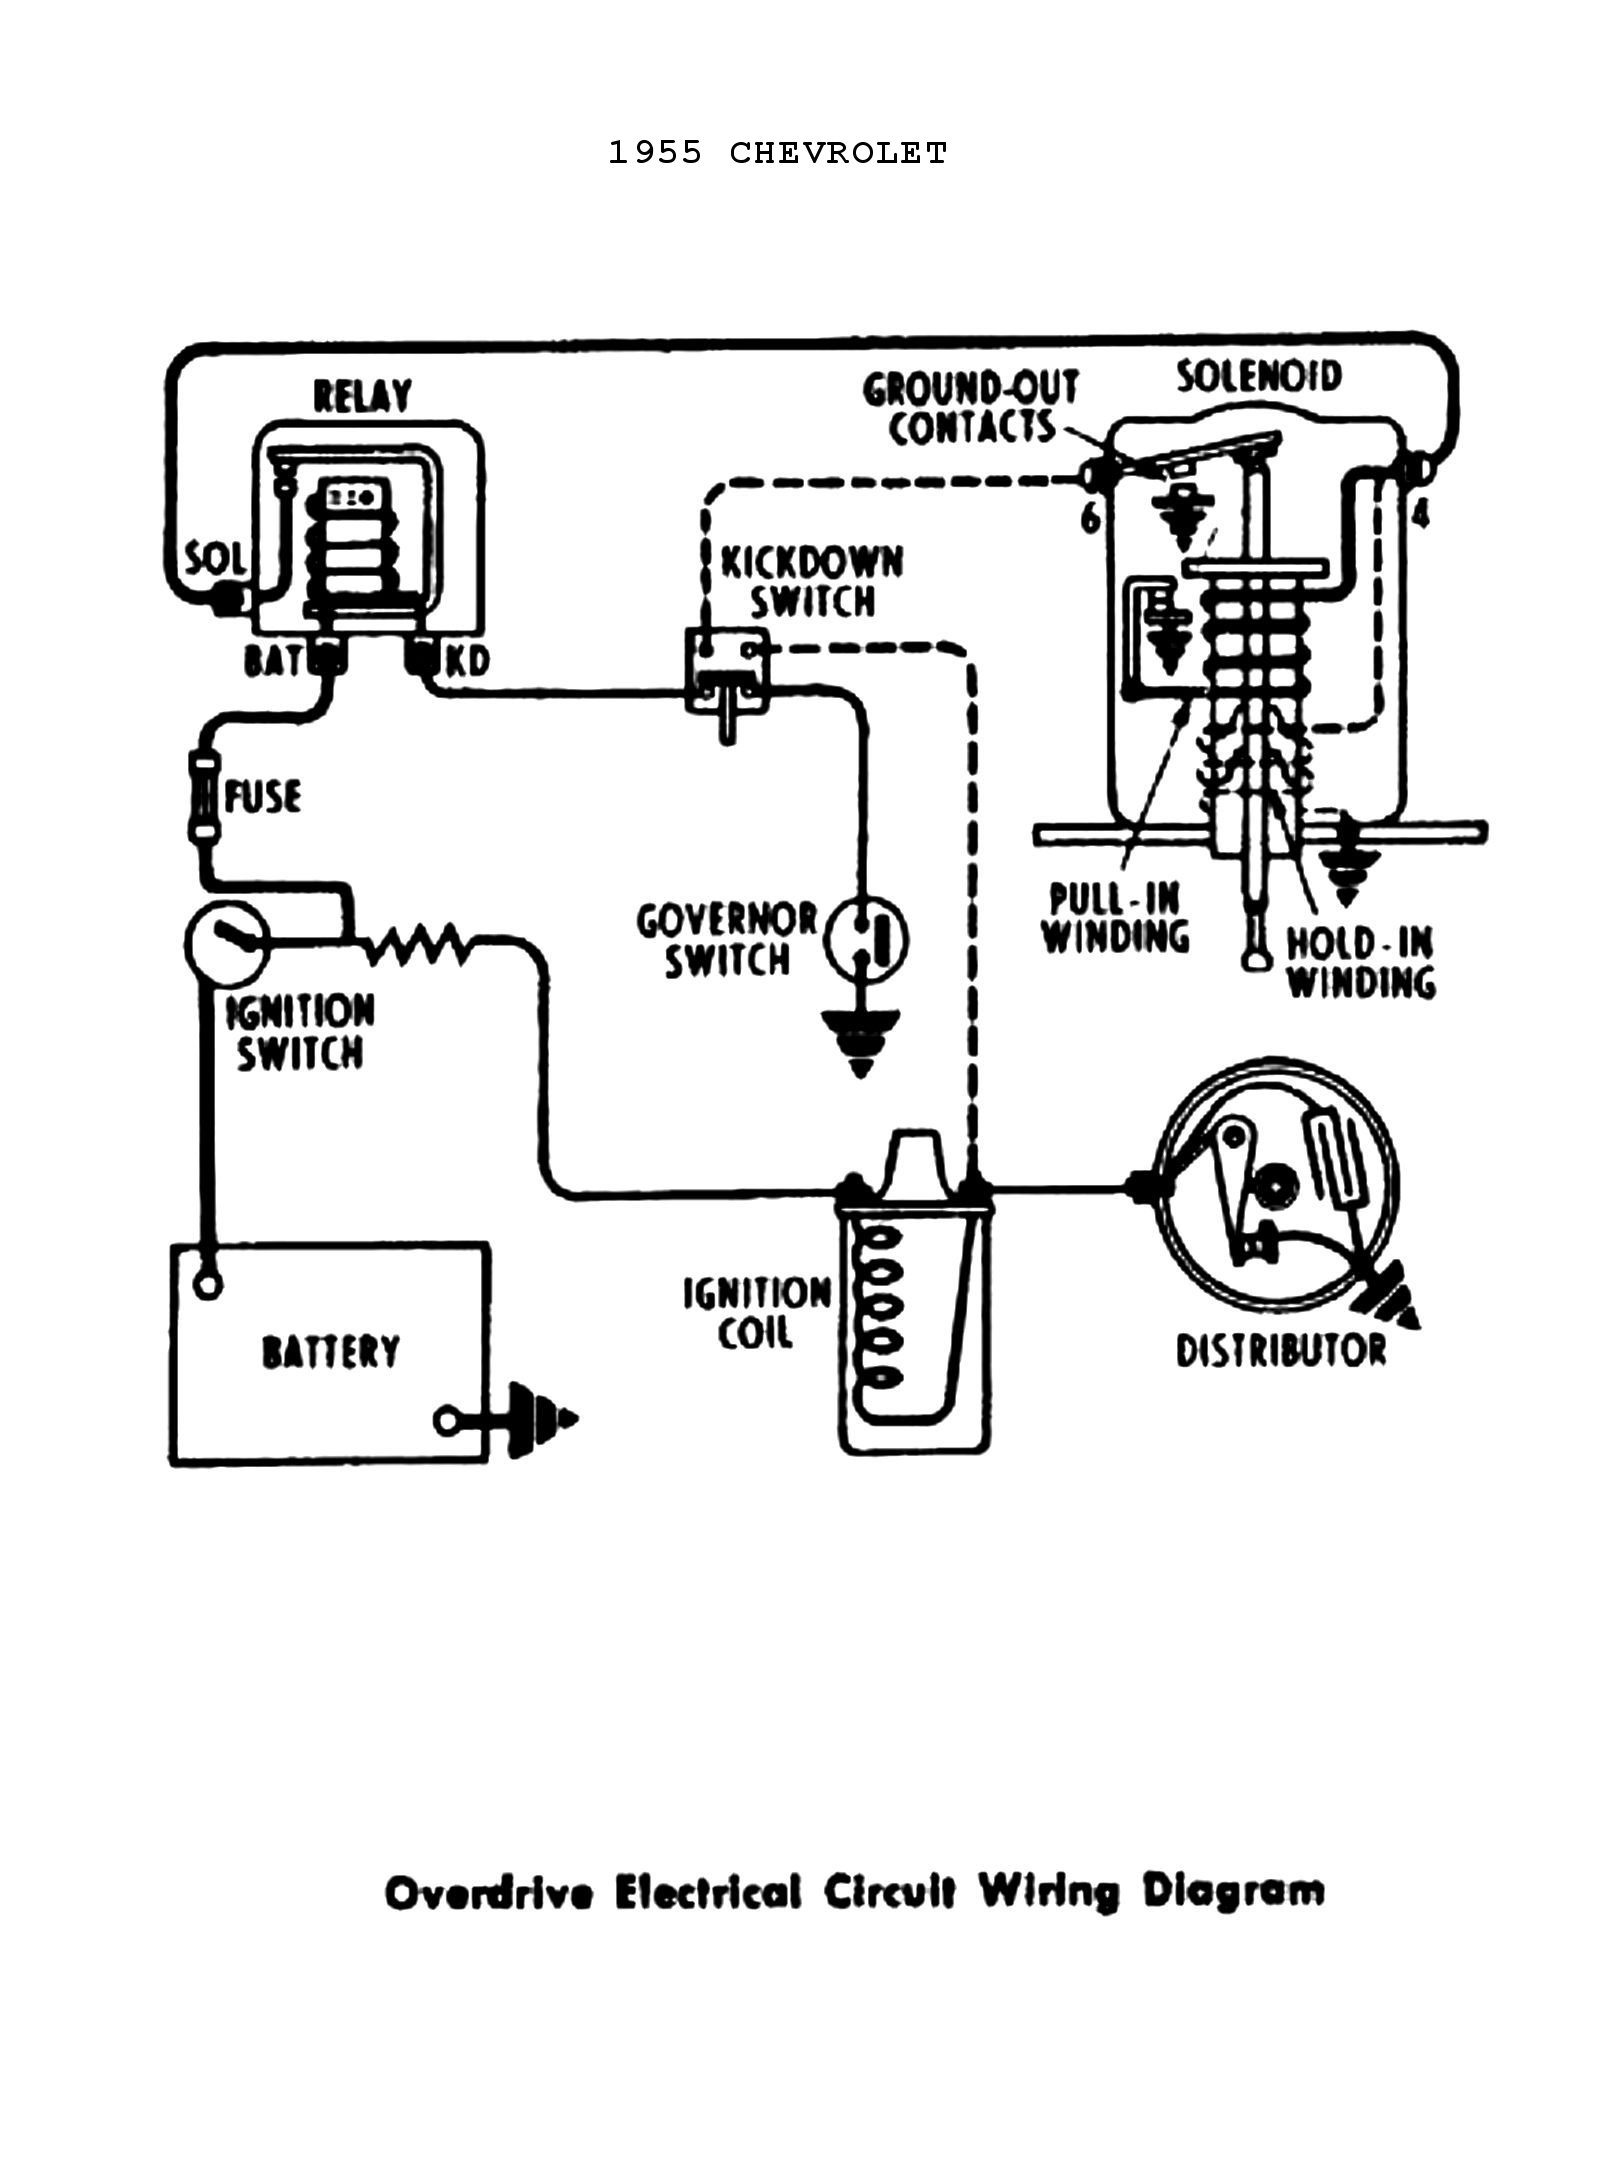 55odtrans1 chevy wiring diagrams chevy ignition wiring diagram at n-0.co